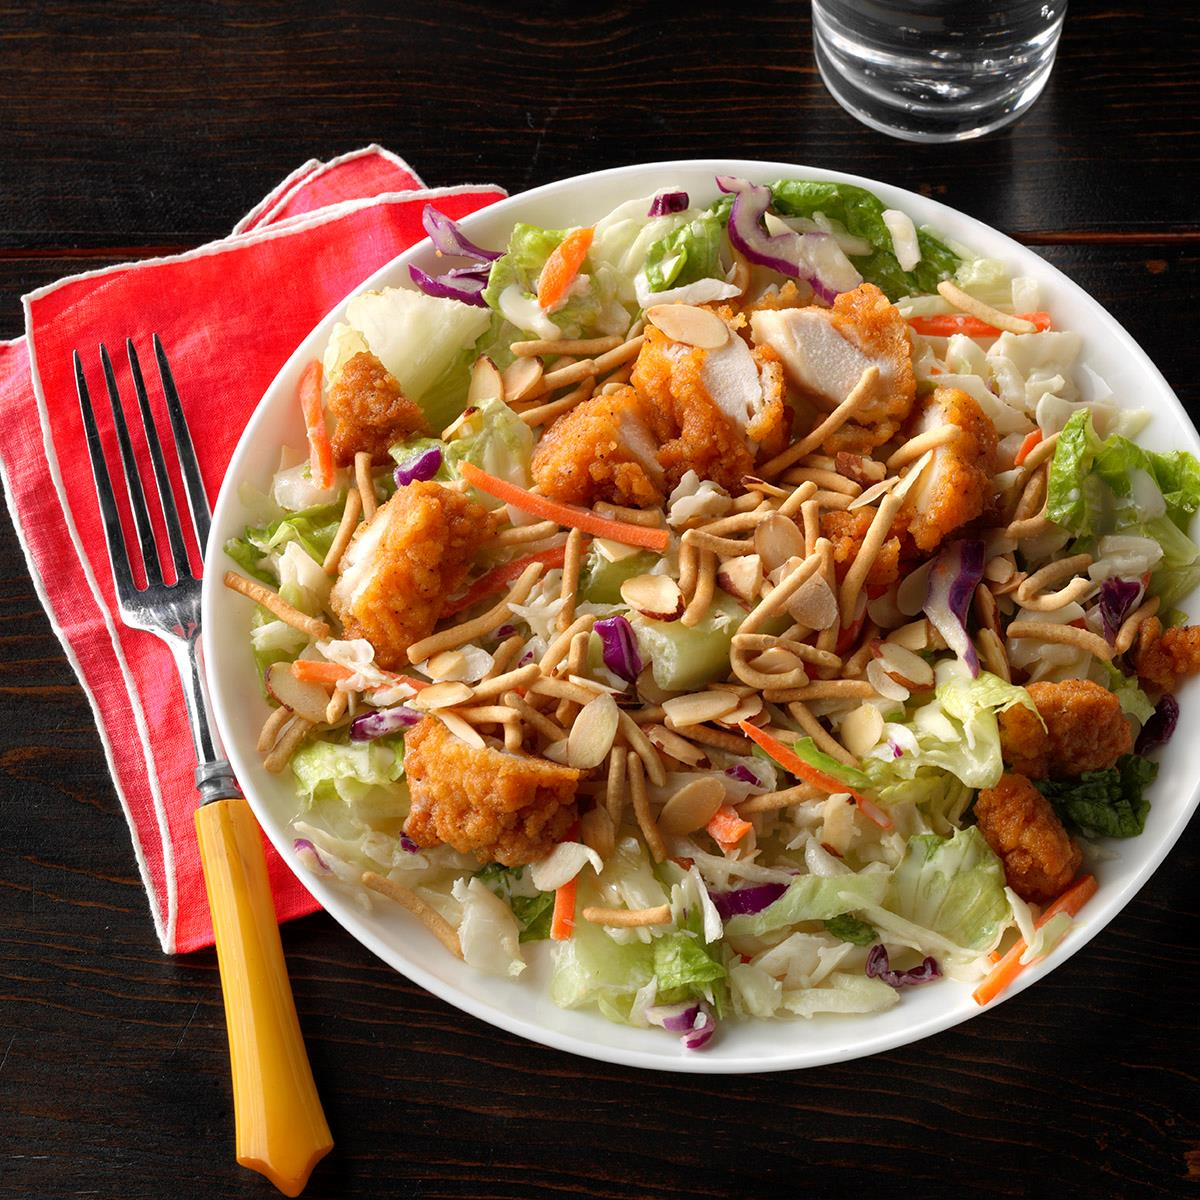 Forum on this topic: Asian Salad with Crispy Chicken, asian-salad-with-crispy-chicken/